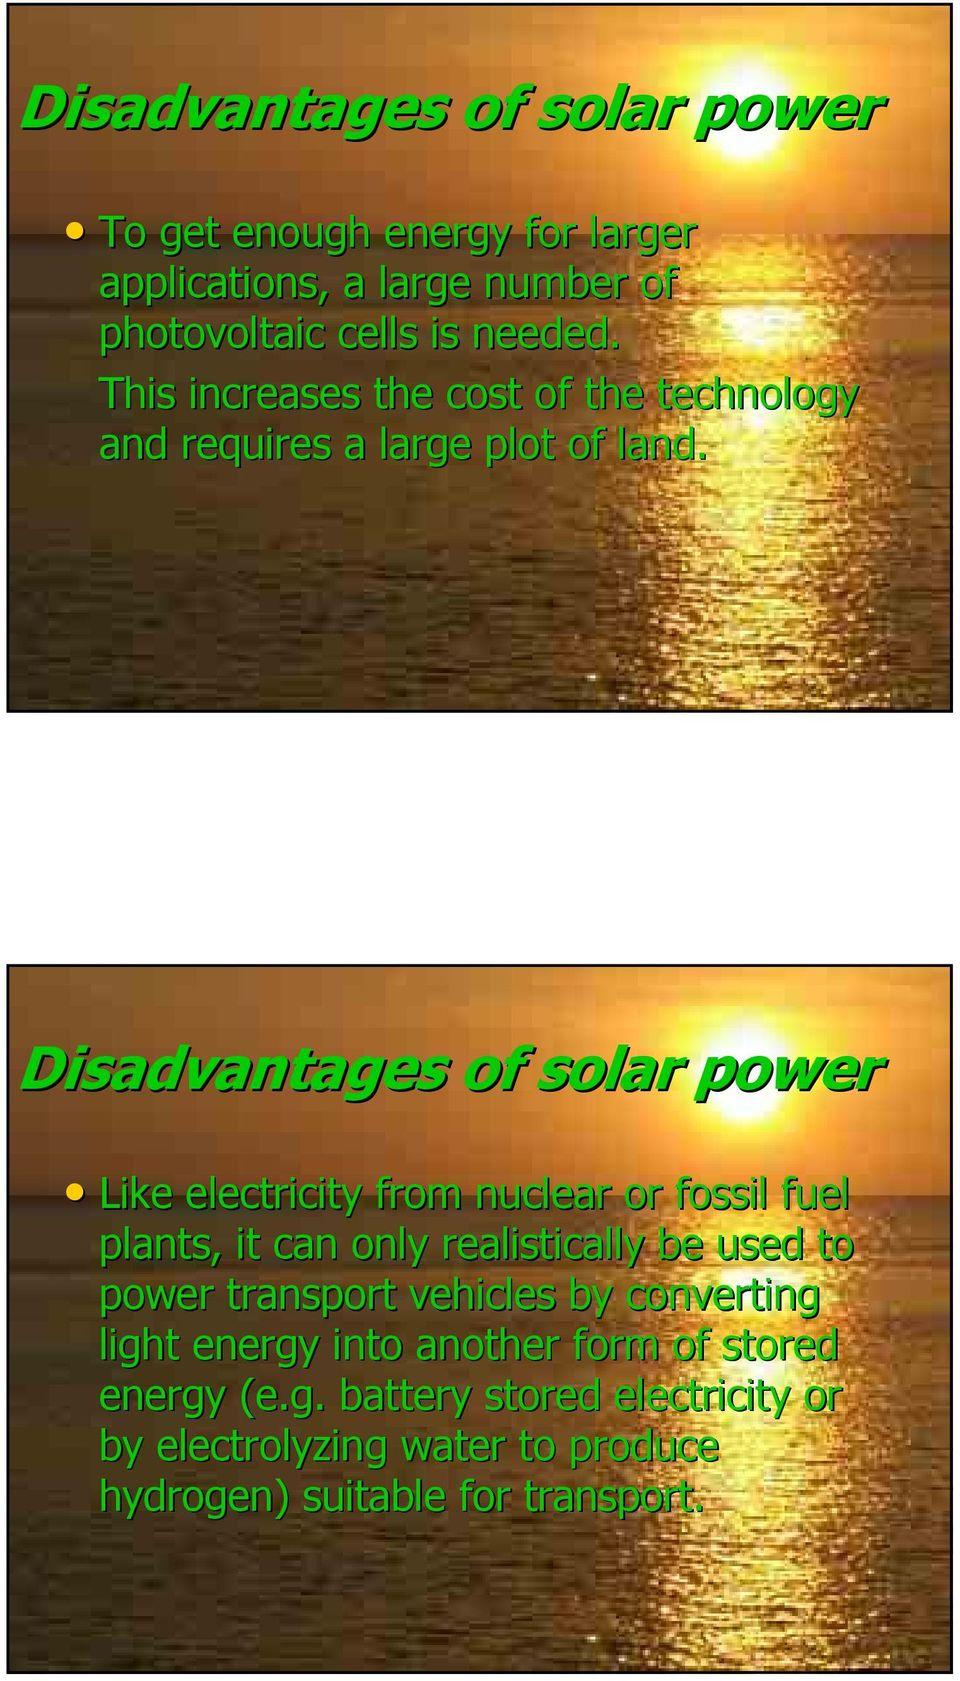 Disadvantages of solar power Like electricity from nuclear or fossil fuel plants, it can only realistically be used to power